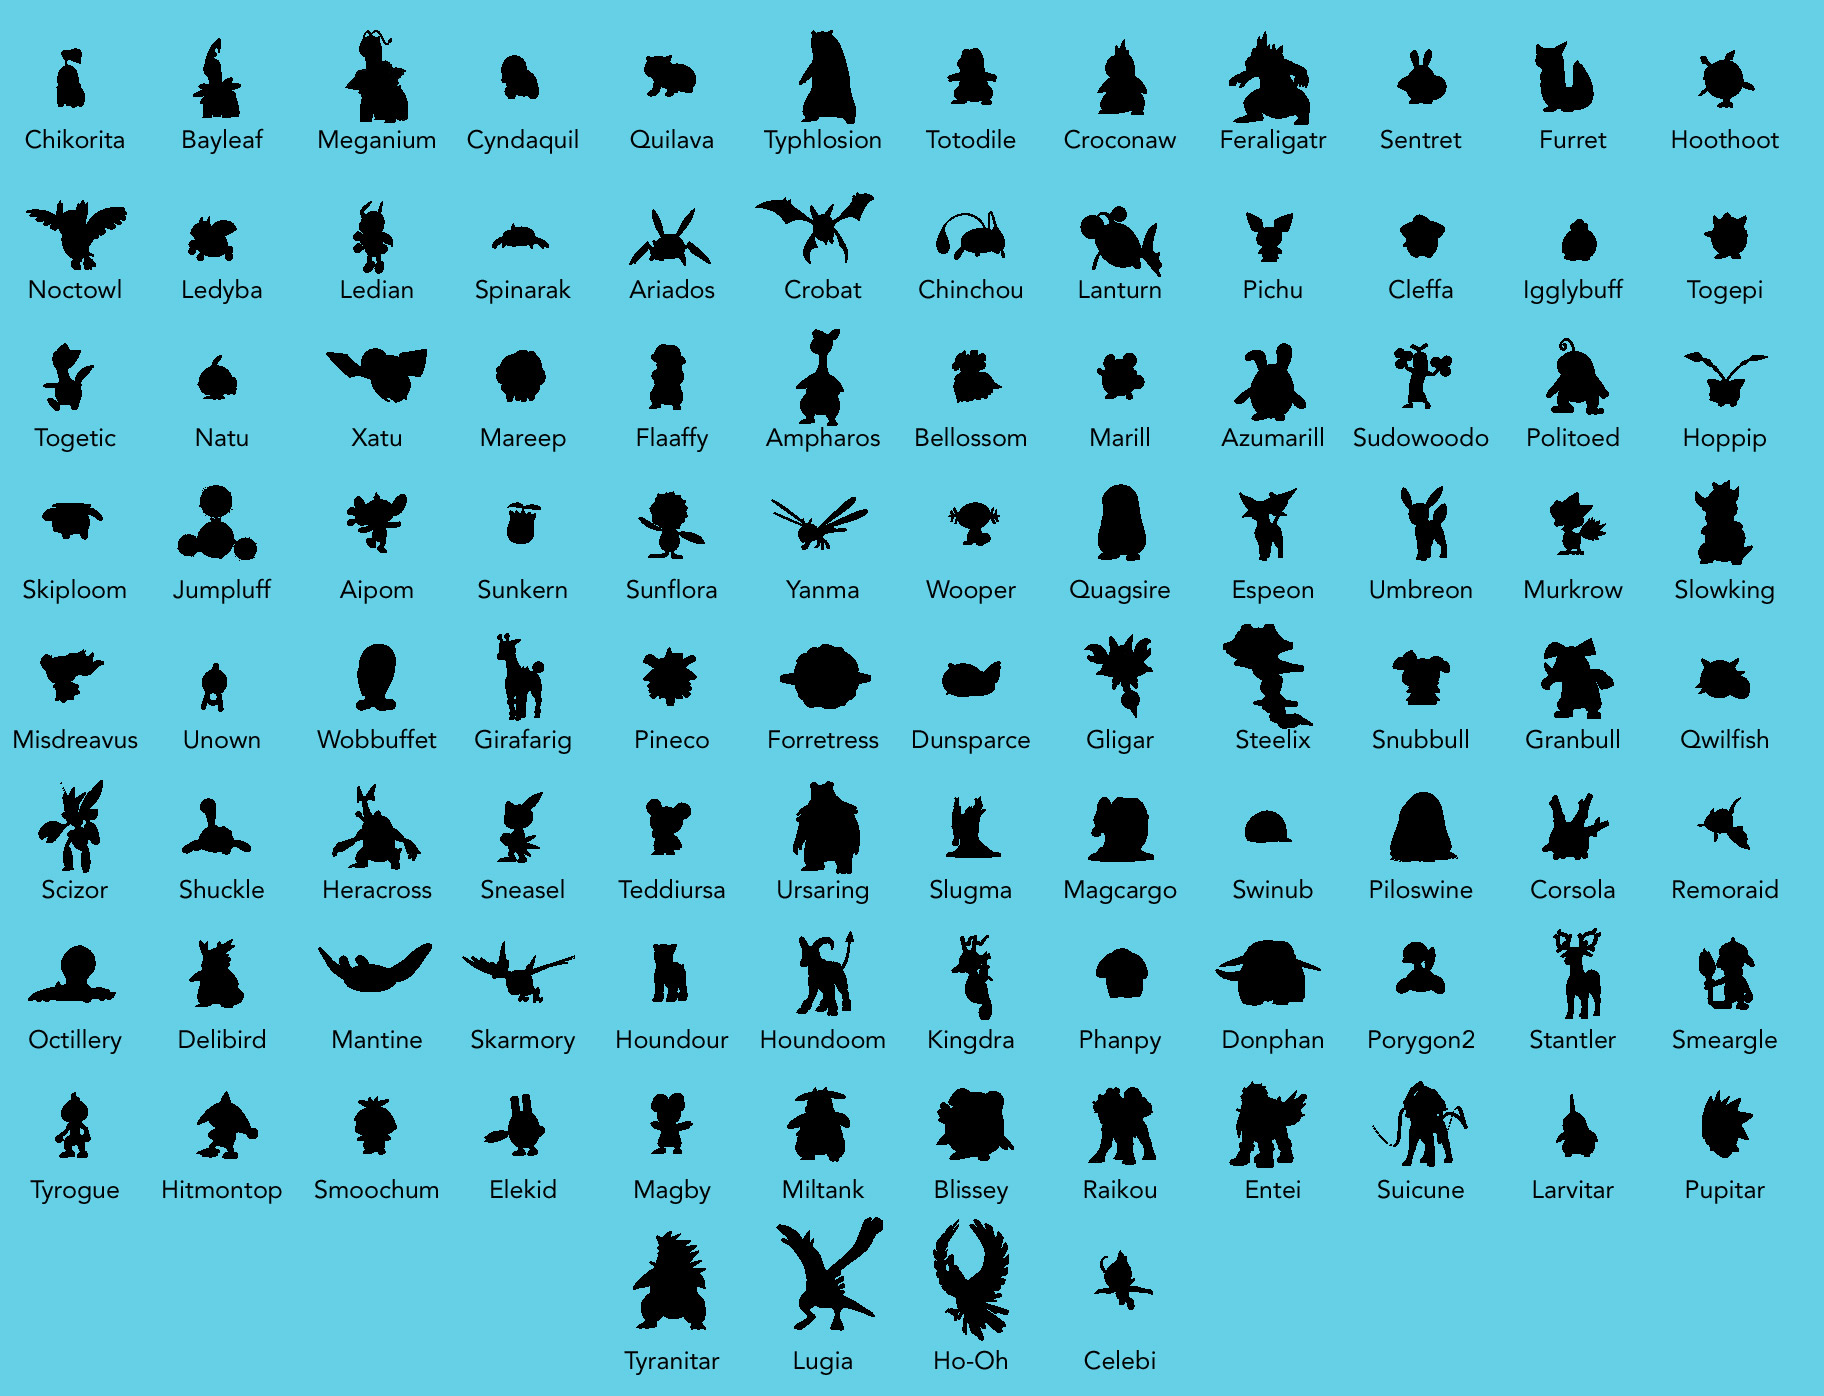 Pokmon go complete pokdex silhouette reference chart updated gen edit february 2017 heres the full pokemon go gen 2 silhouettes reference chart courtesy of redditor mgodseydesign altavistaventures Images